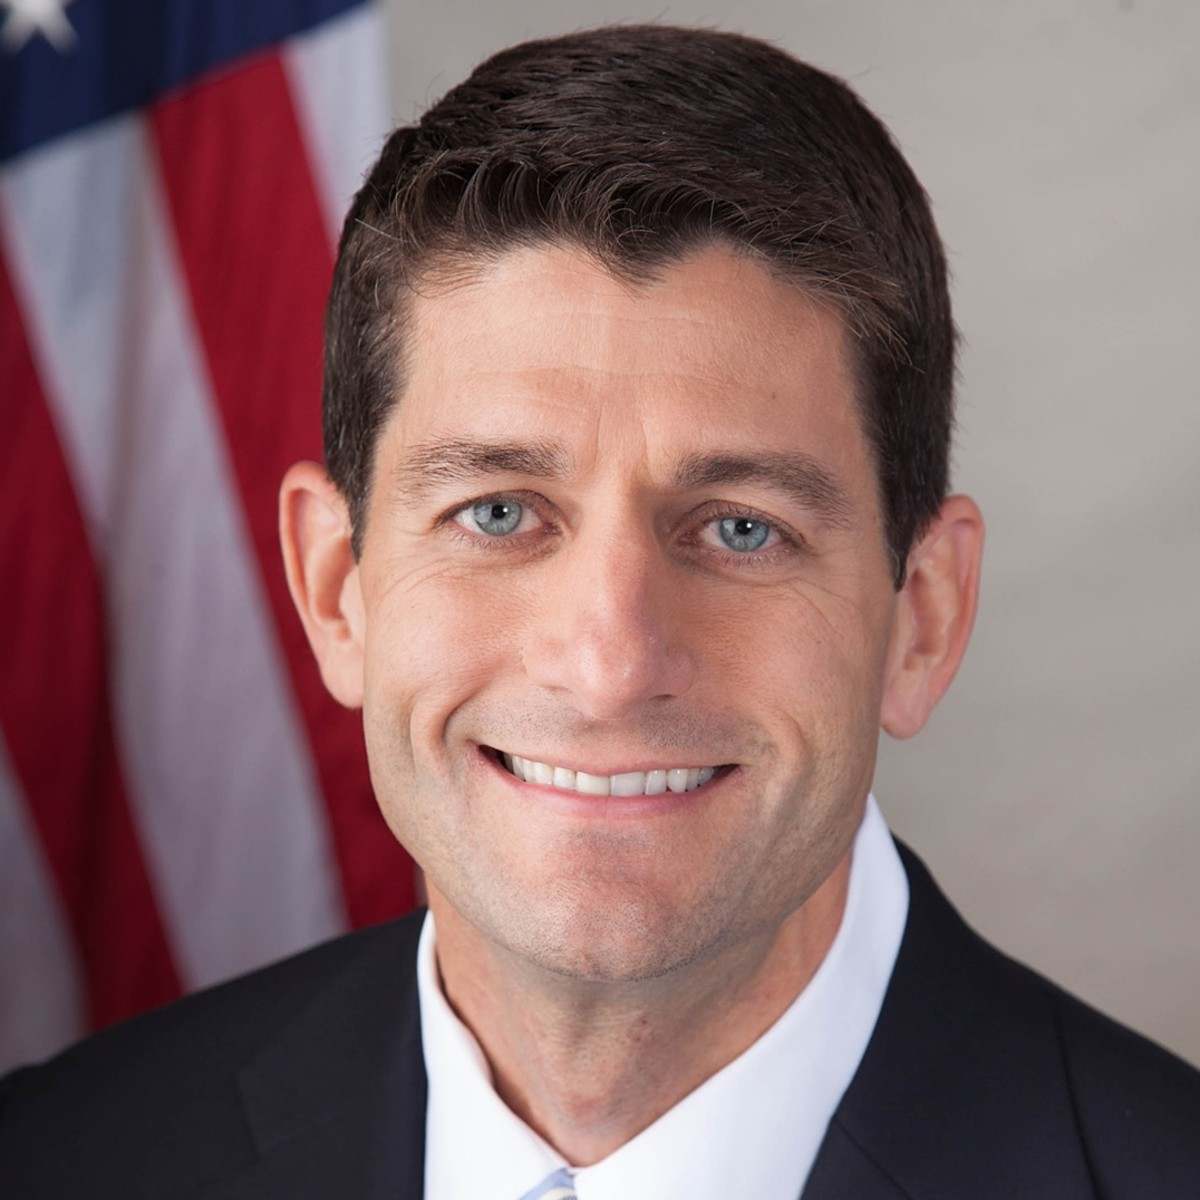 Paul Ryan Official Photo via Wikimedia